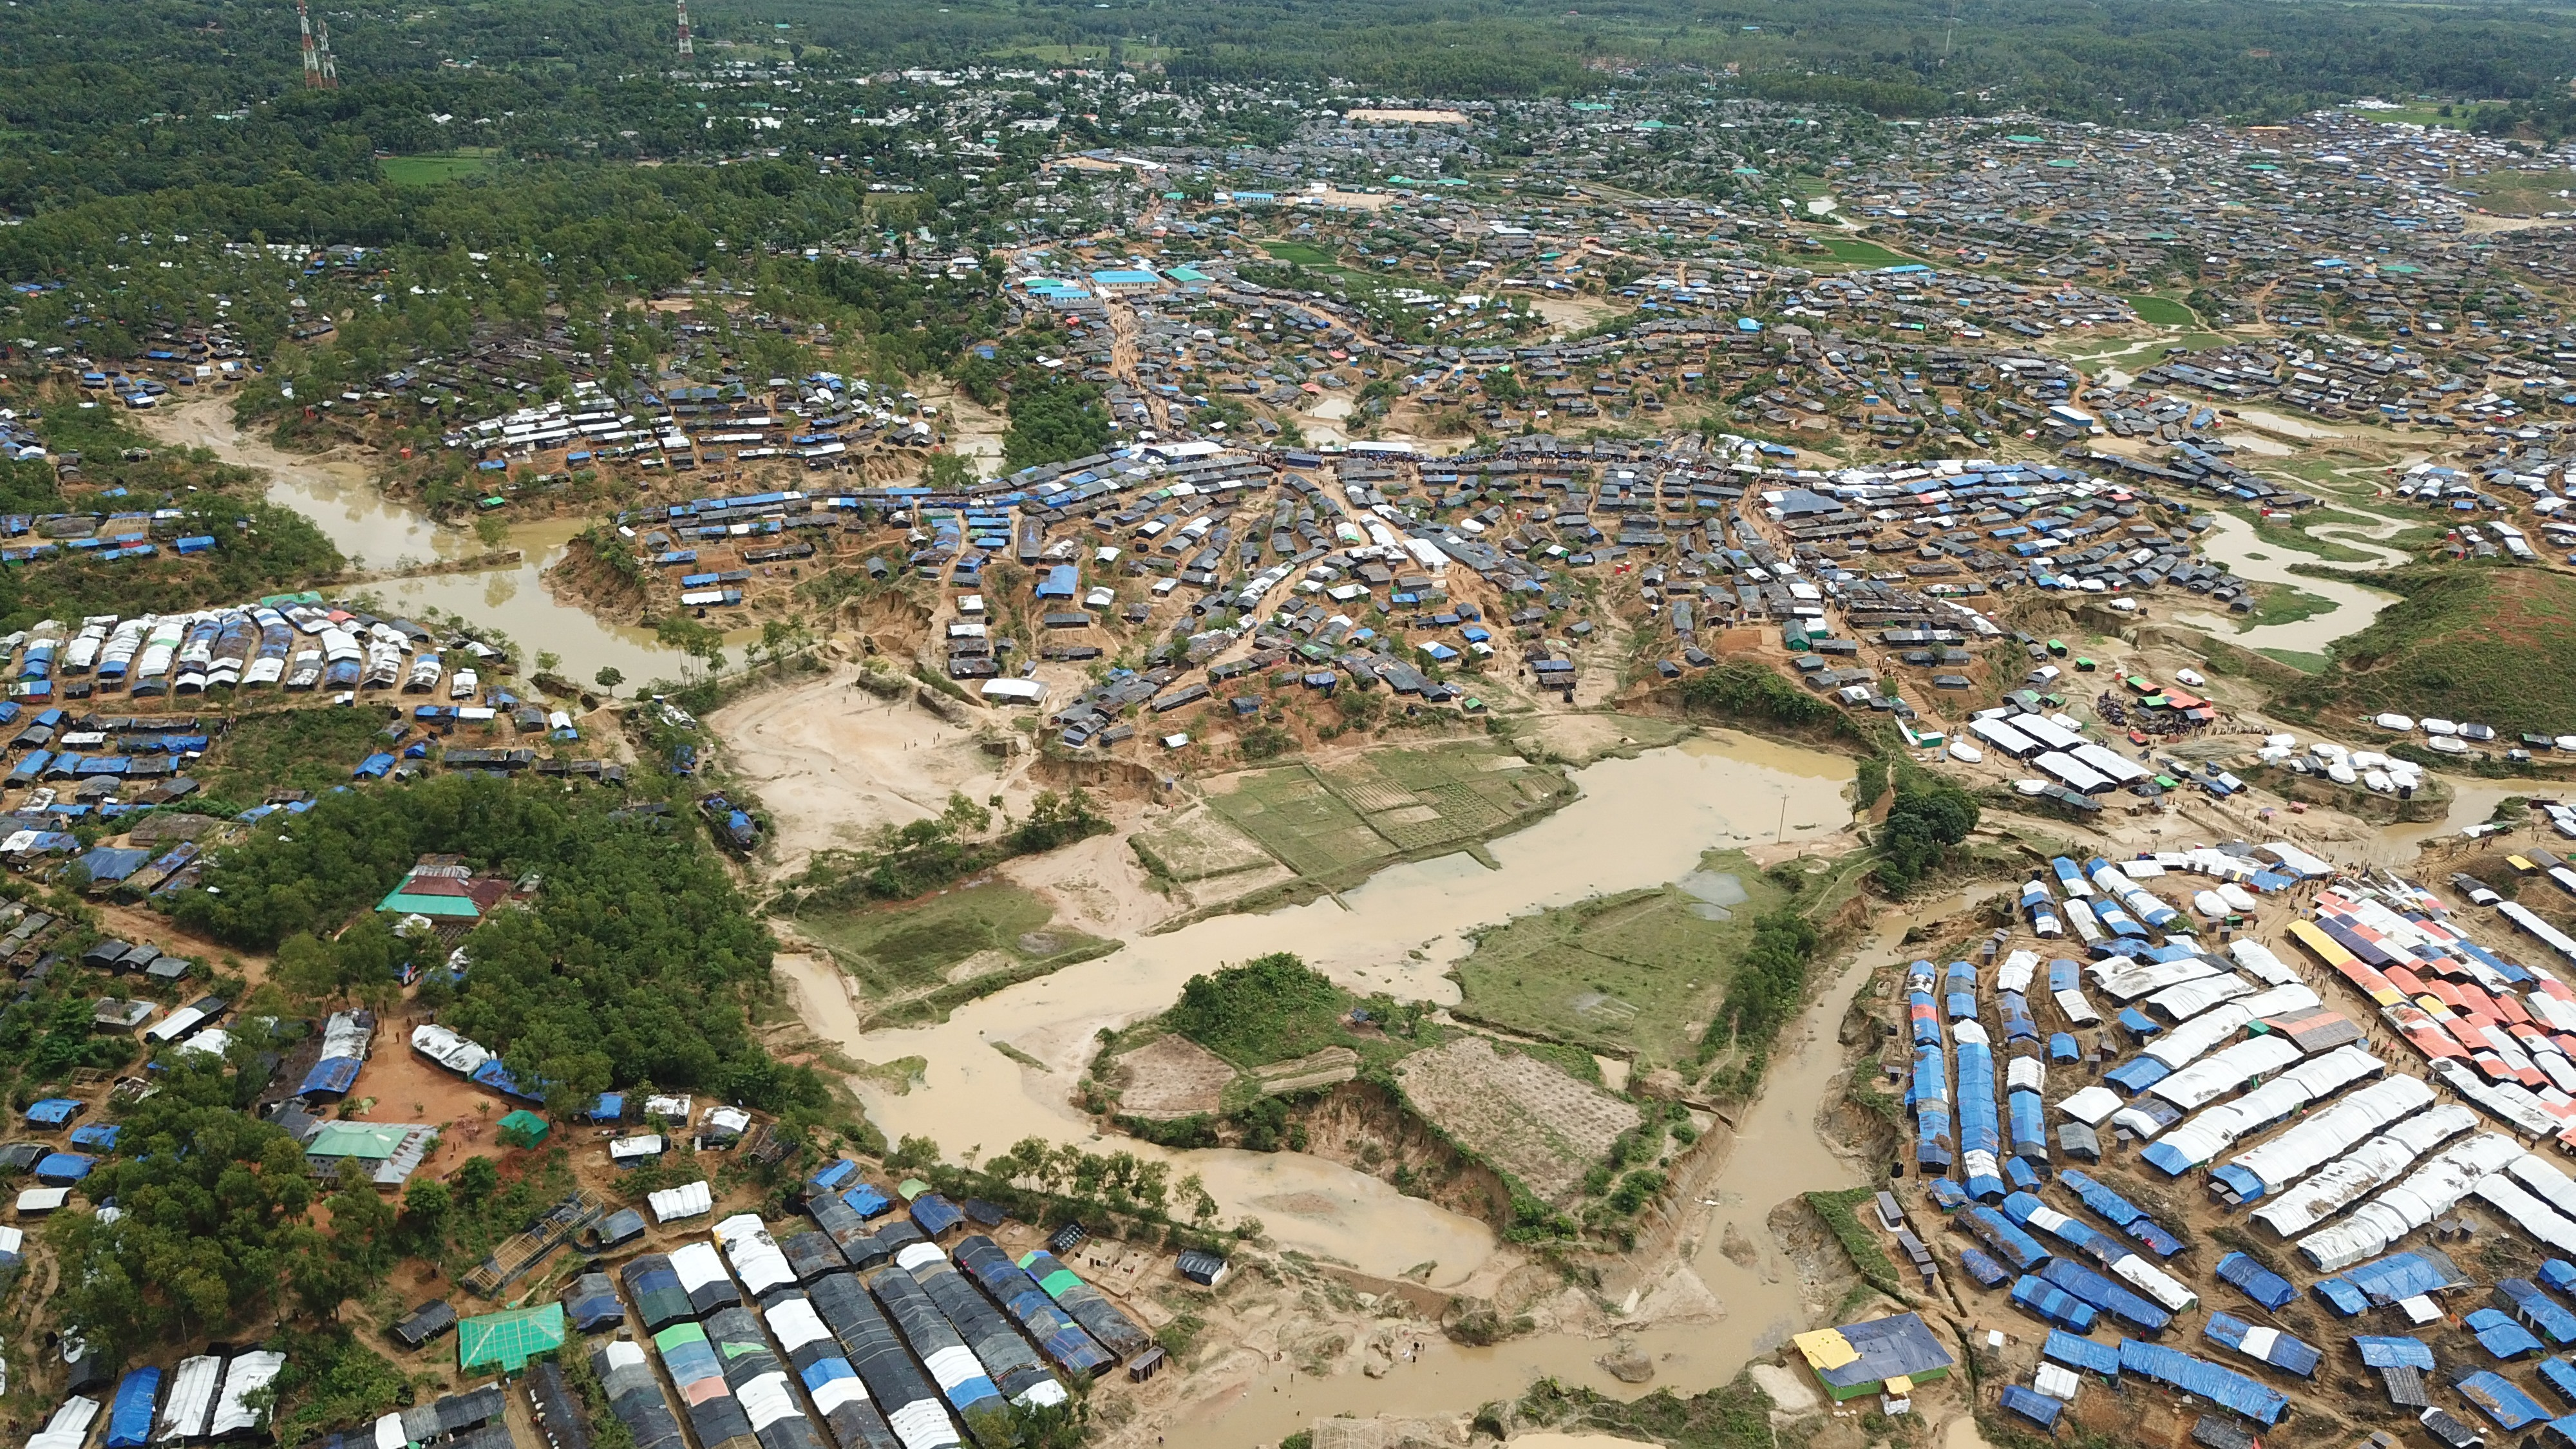 drone map of a refugee camp